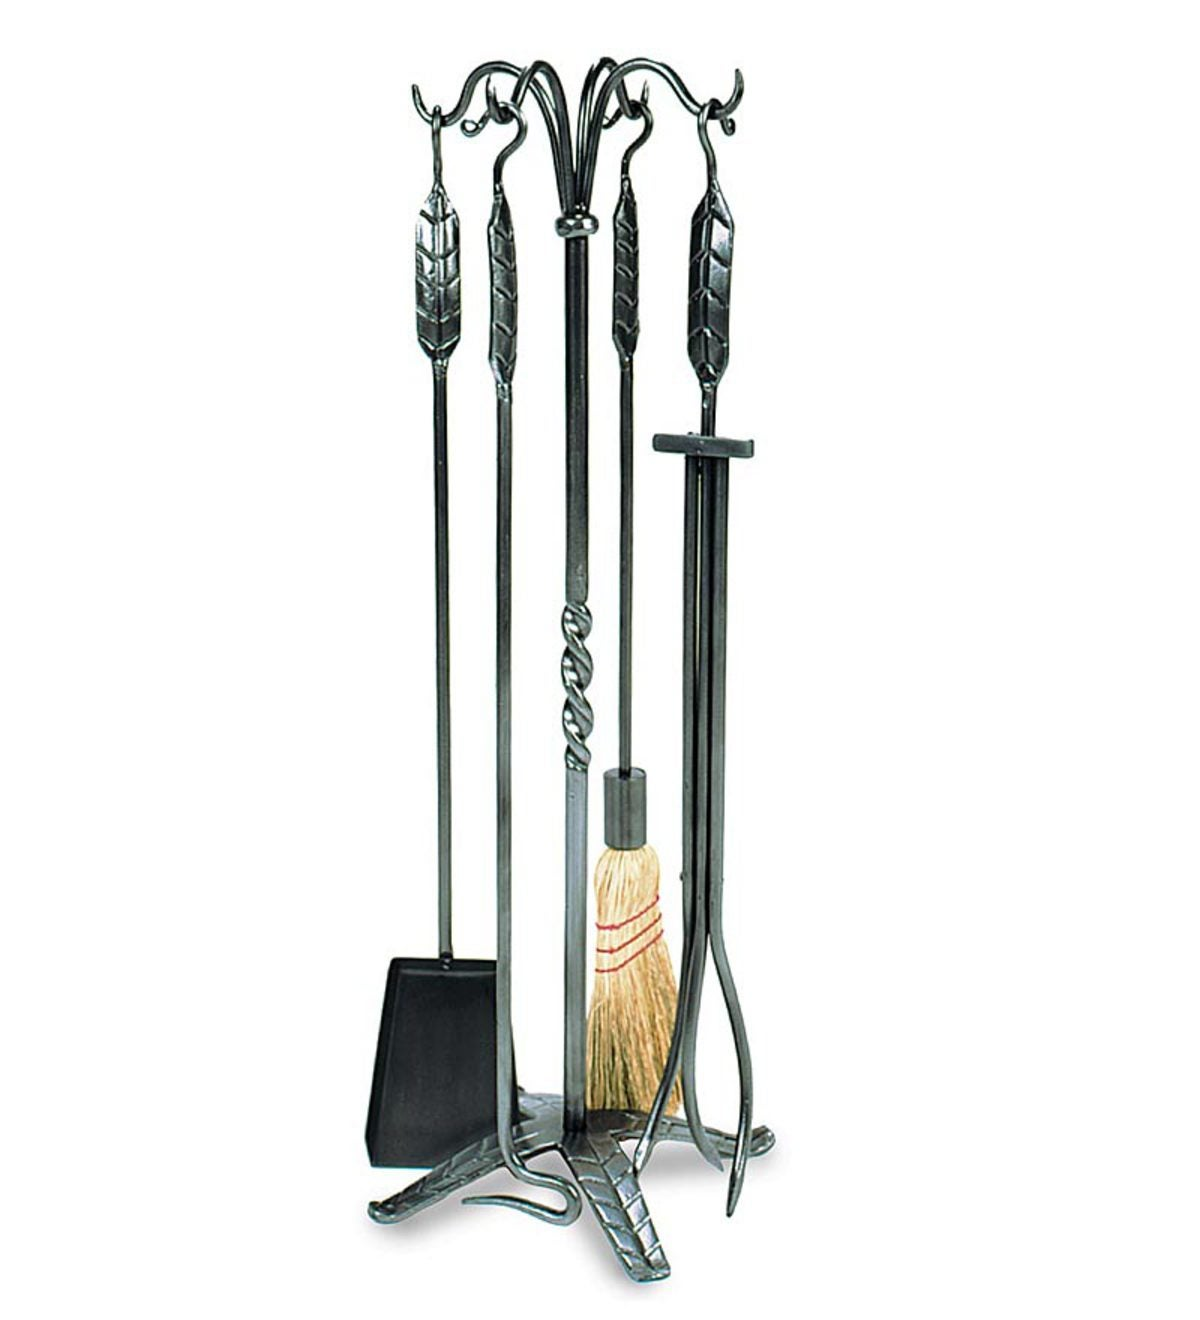 5-Piece Fireplace Tool Set with Leaf Handles